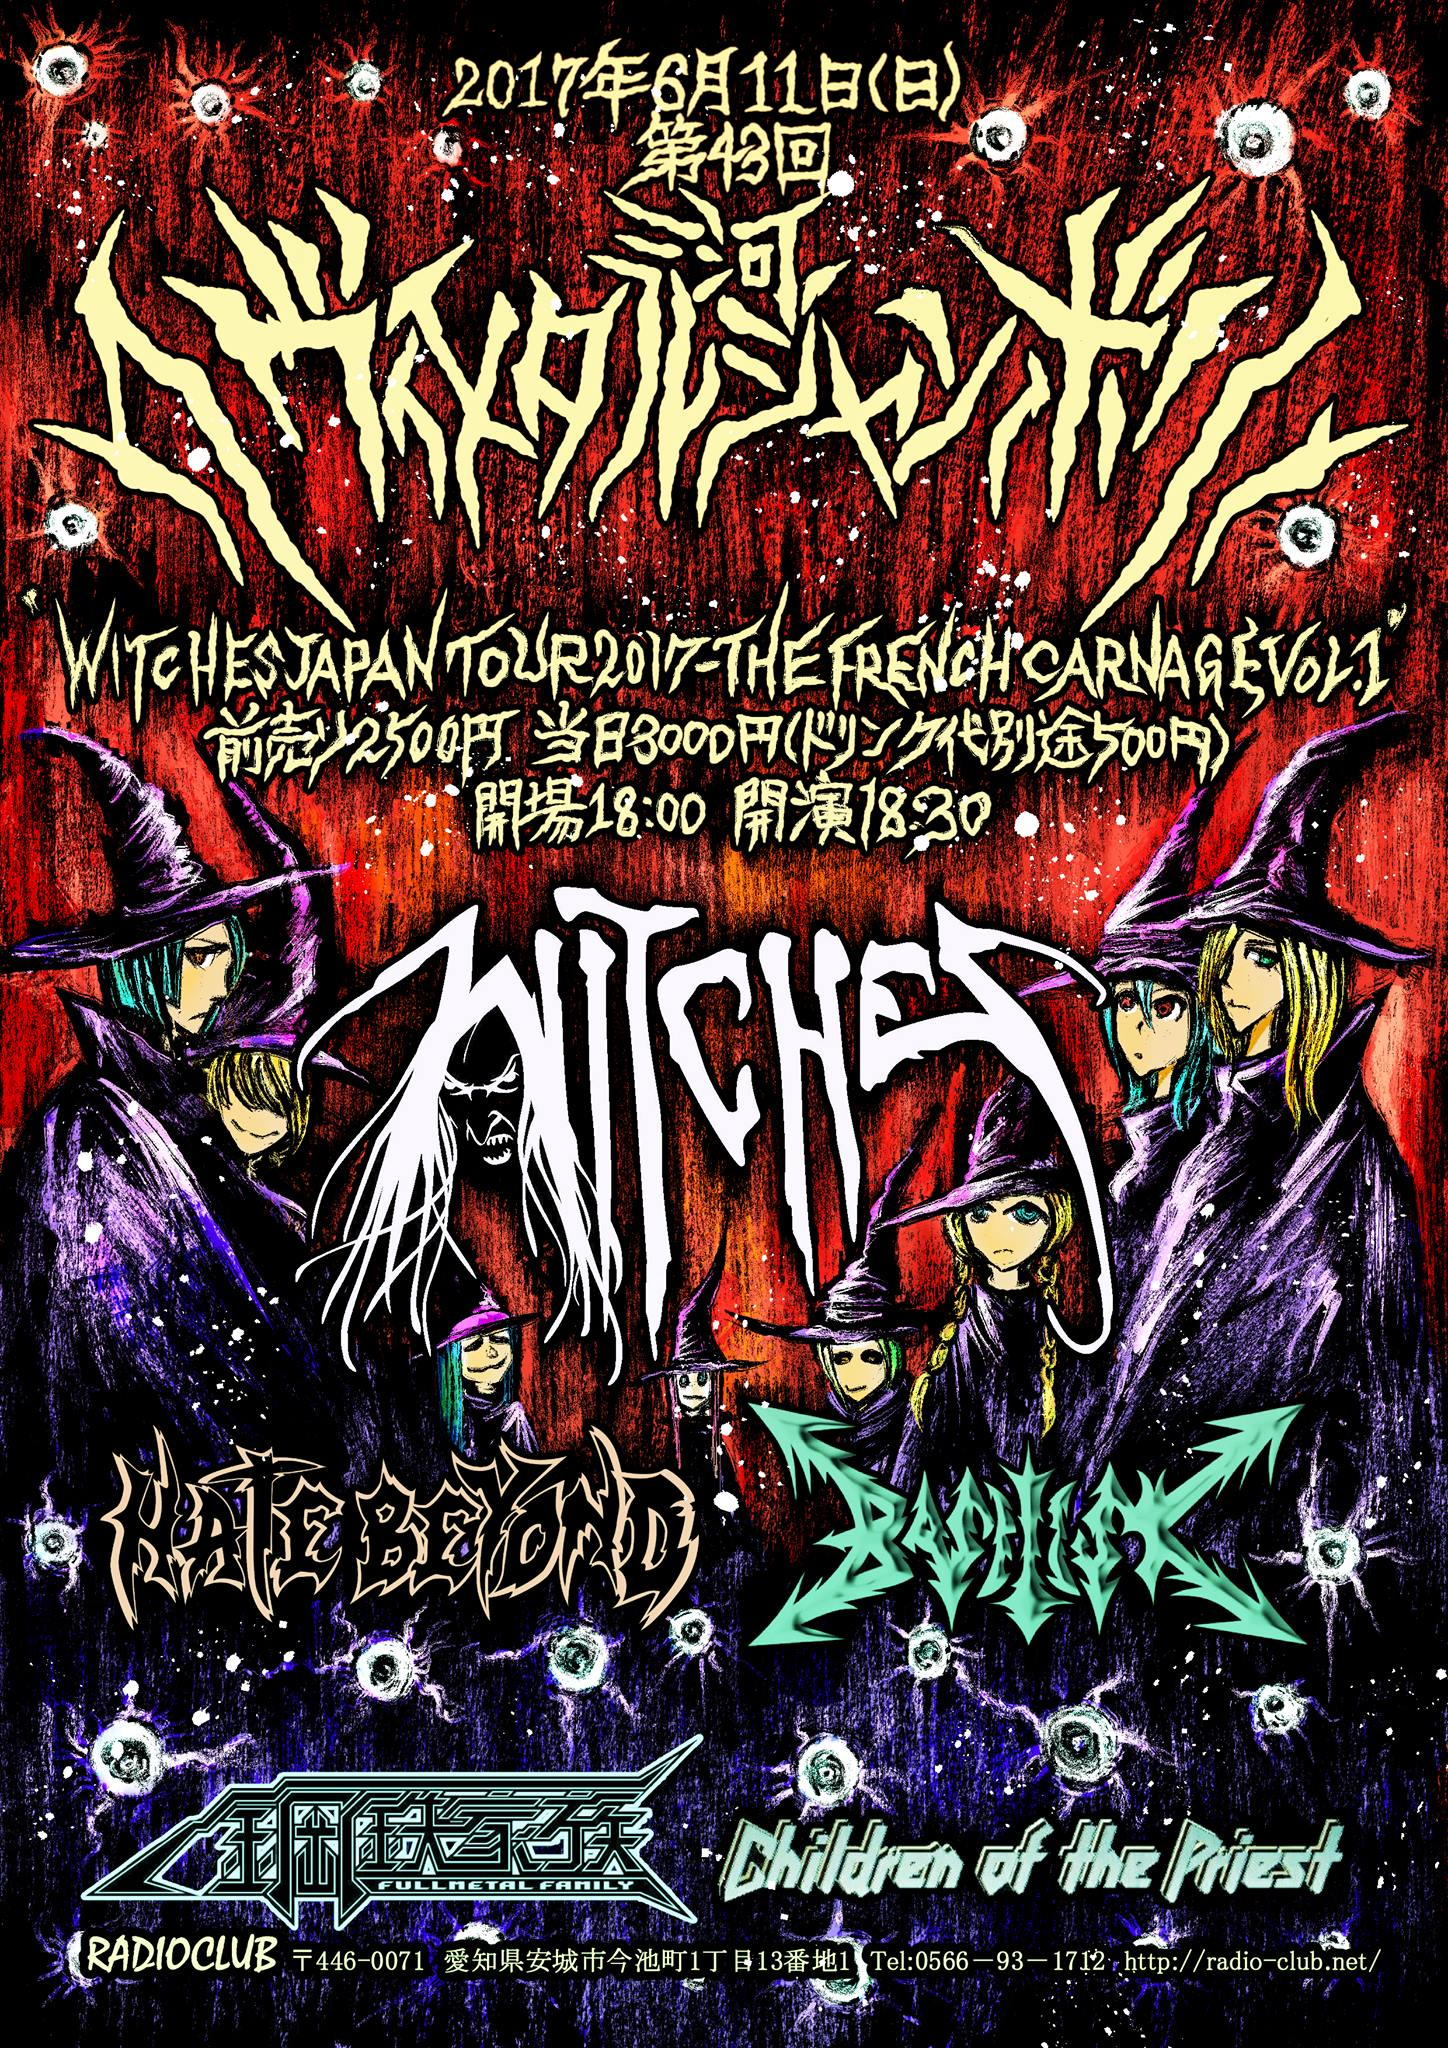 Witches flyer WITCHES + Hate Beyond + Basilisk + 鋼鉄家族 + Children of the priest  @ Witches JAPAN TOUR 2017 安城市 RADIO CLUB Aichi, Anjyo, JAPAN